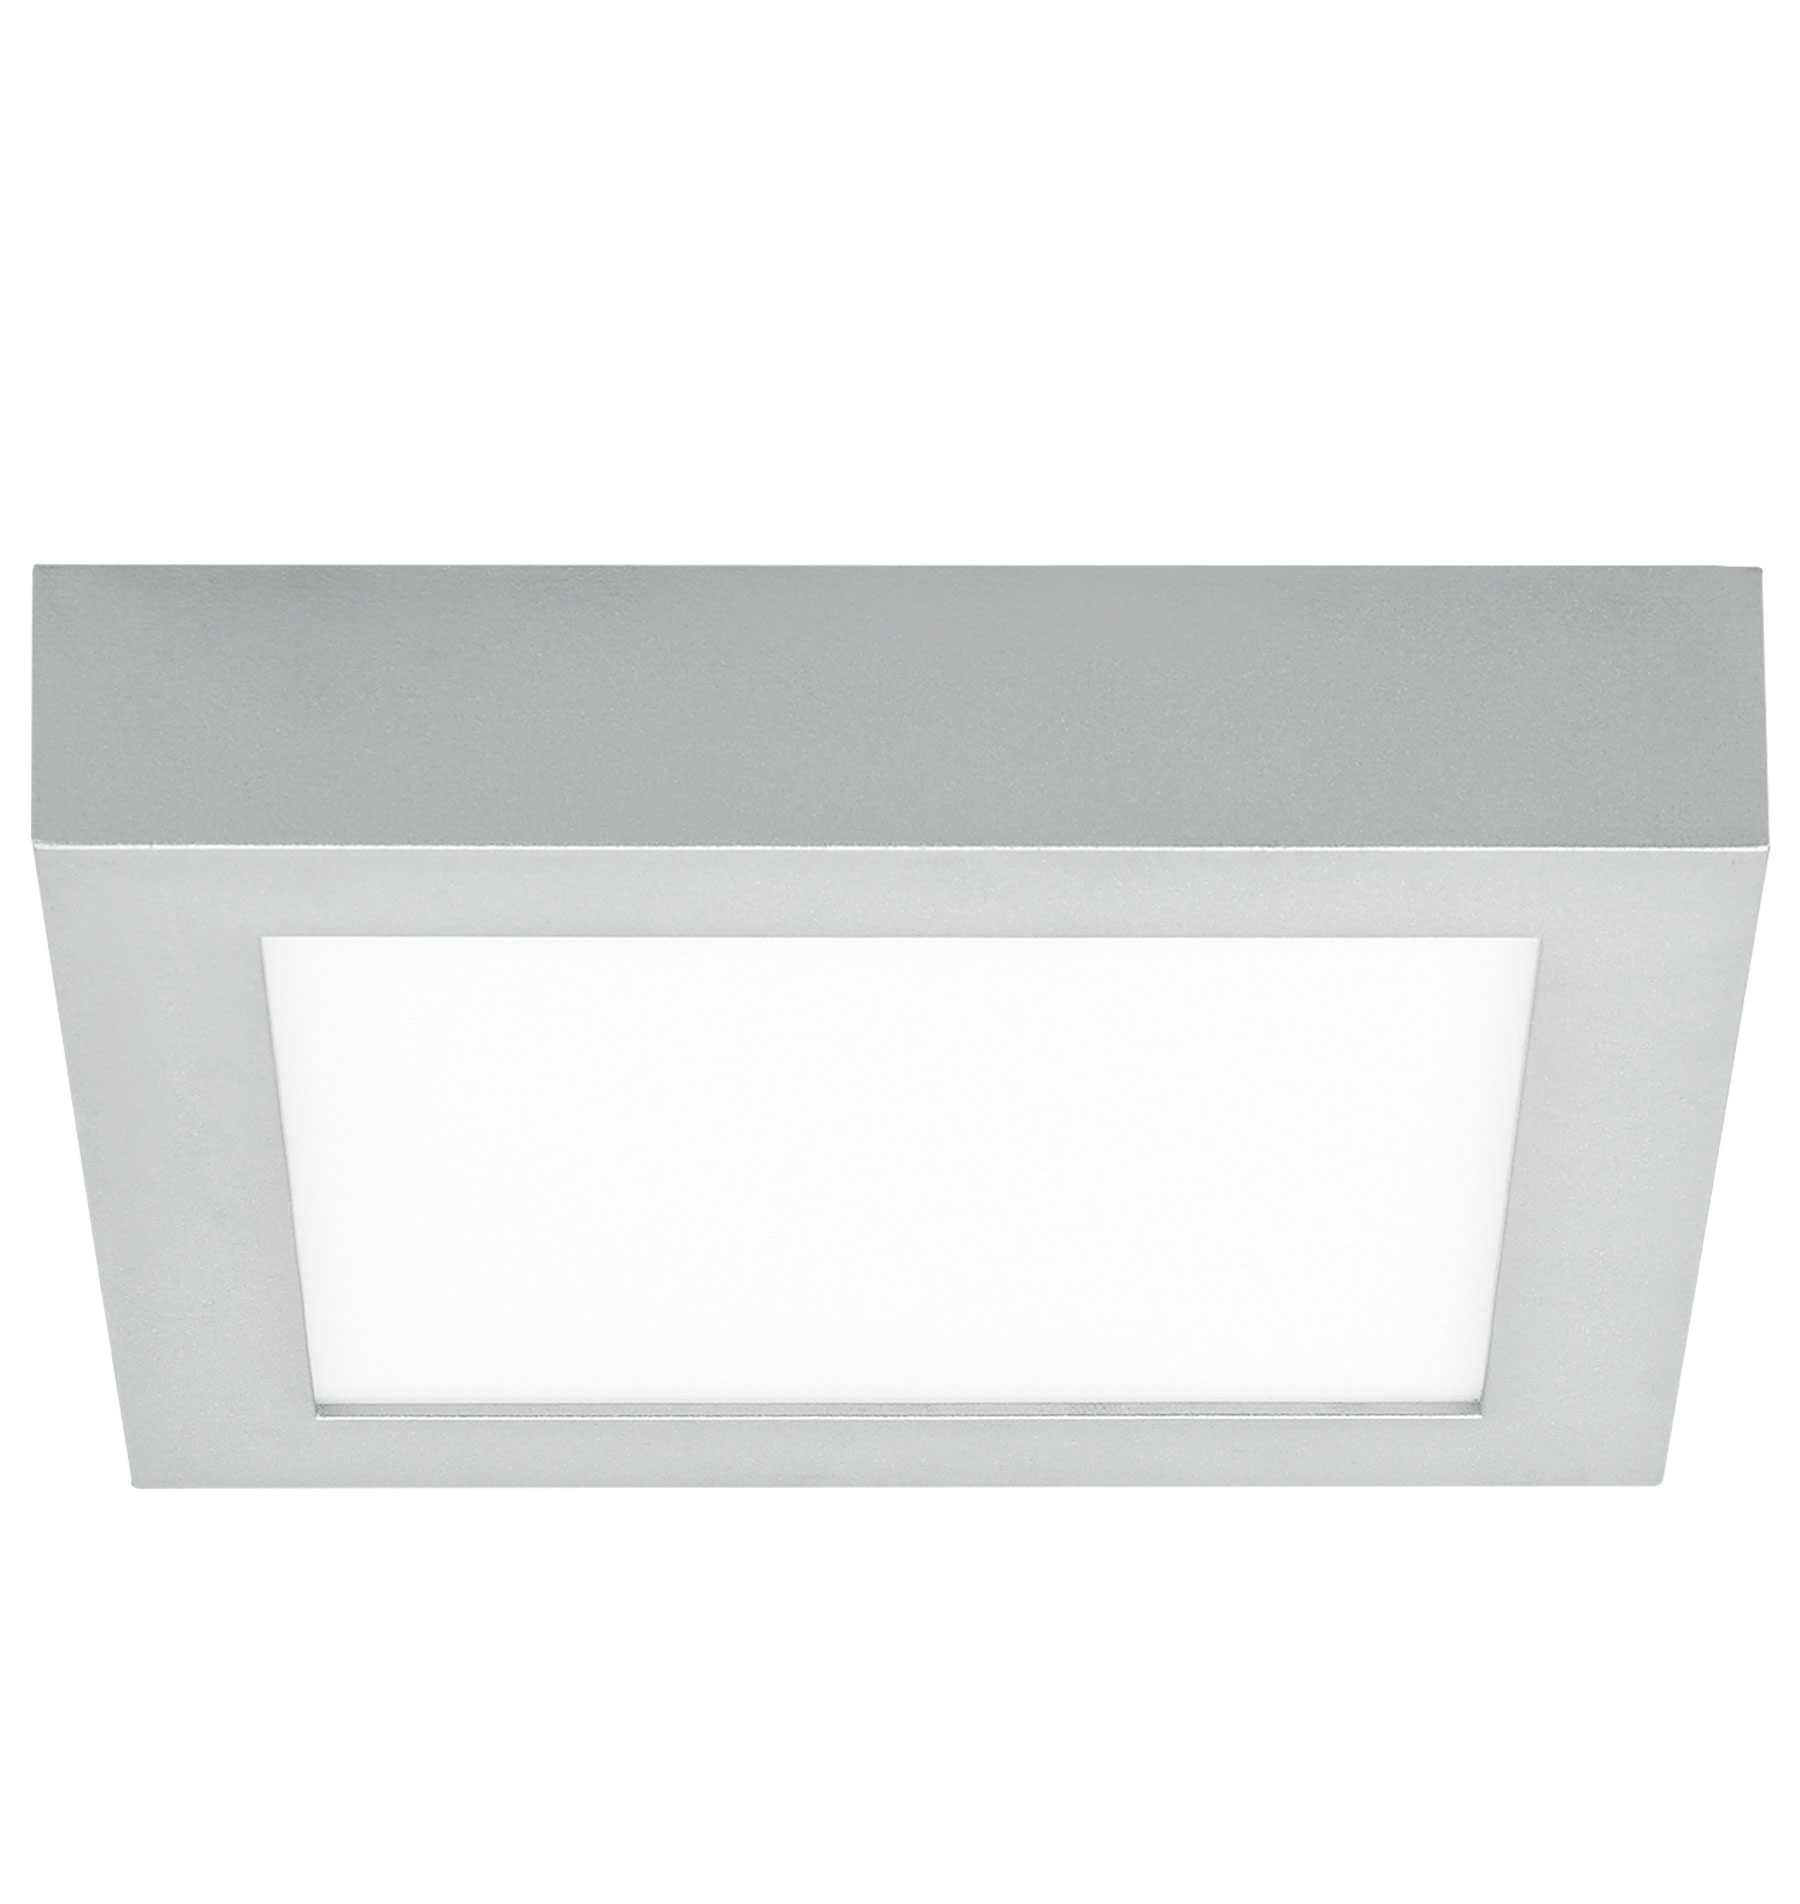 Tenur Square Ceiling Light Fixture by LBL Lighting | FM927OYSILED930